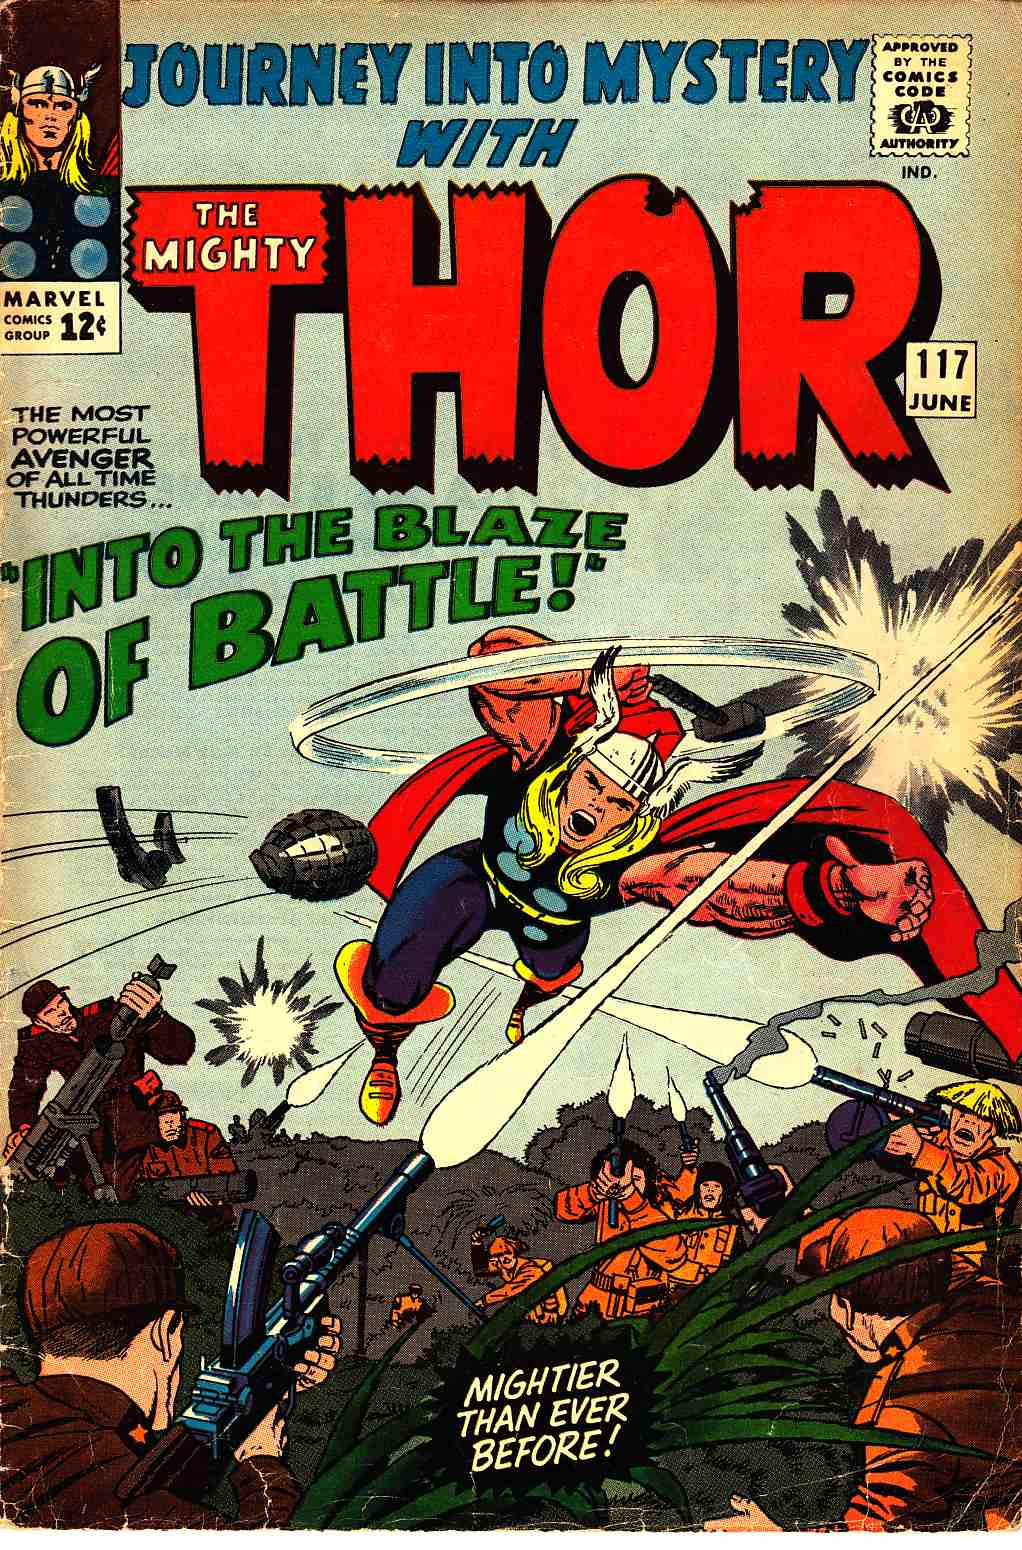 Journey Into Mystery Thor #117 Very Good (4.0) [Marvel Comic] THUMBNAIL